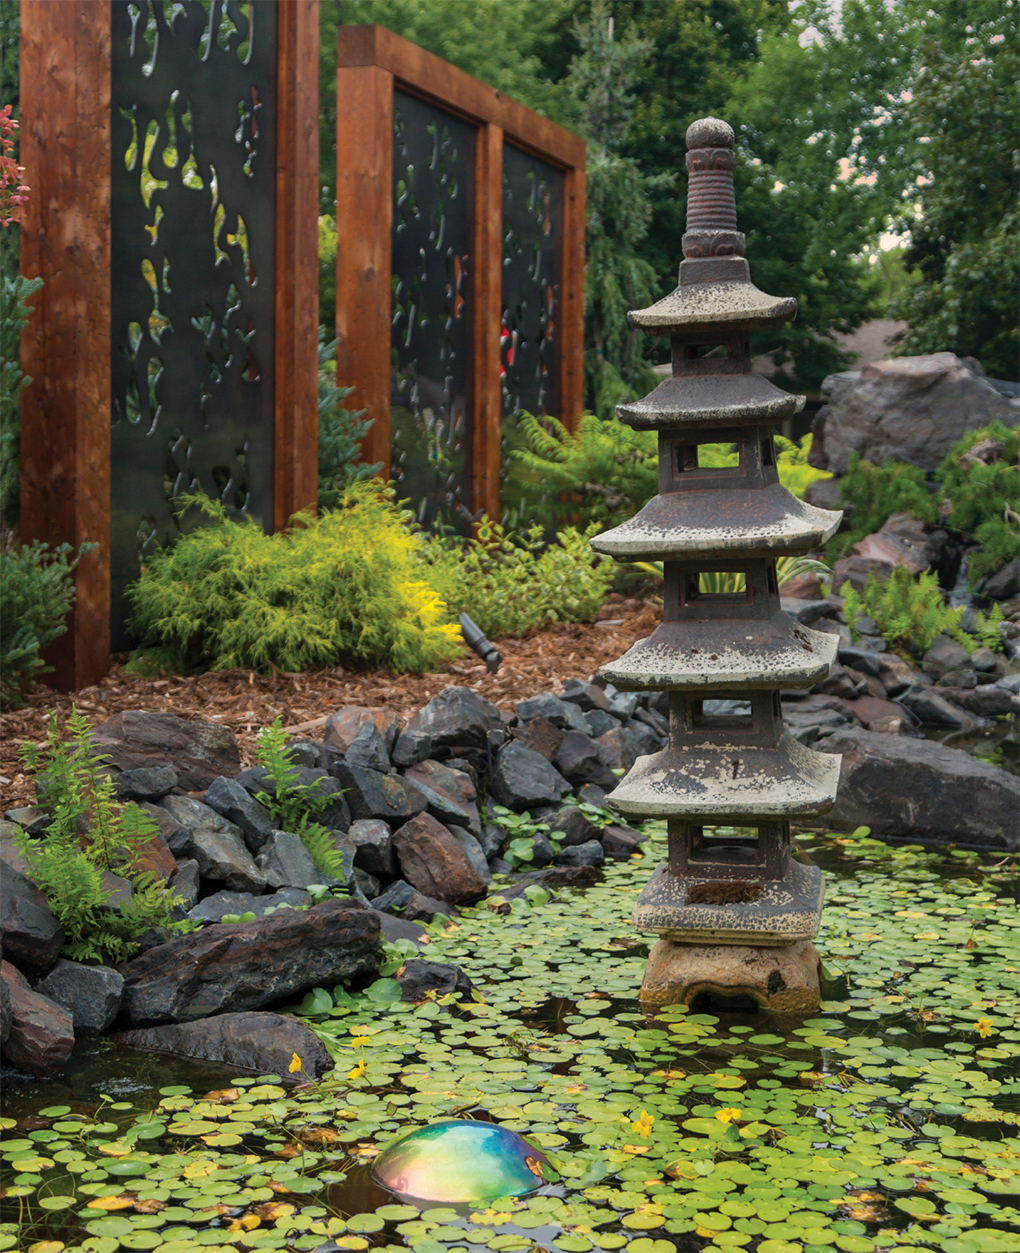 Statues and lanterns imported from Bali reflect the homeowners' affinity for the Indonesian paradise.